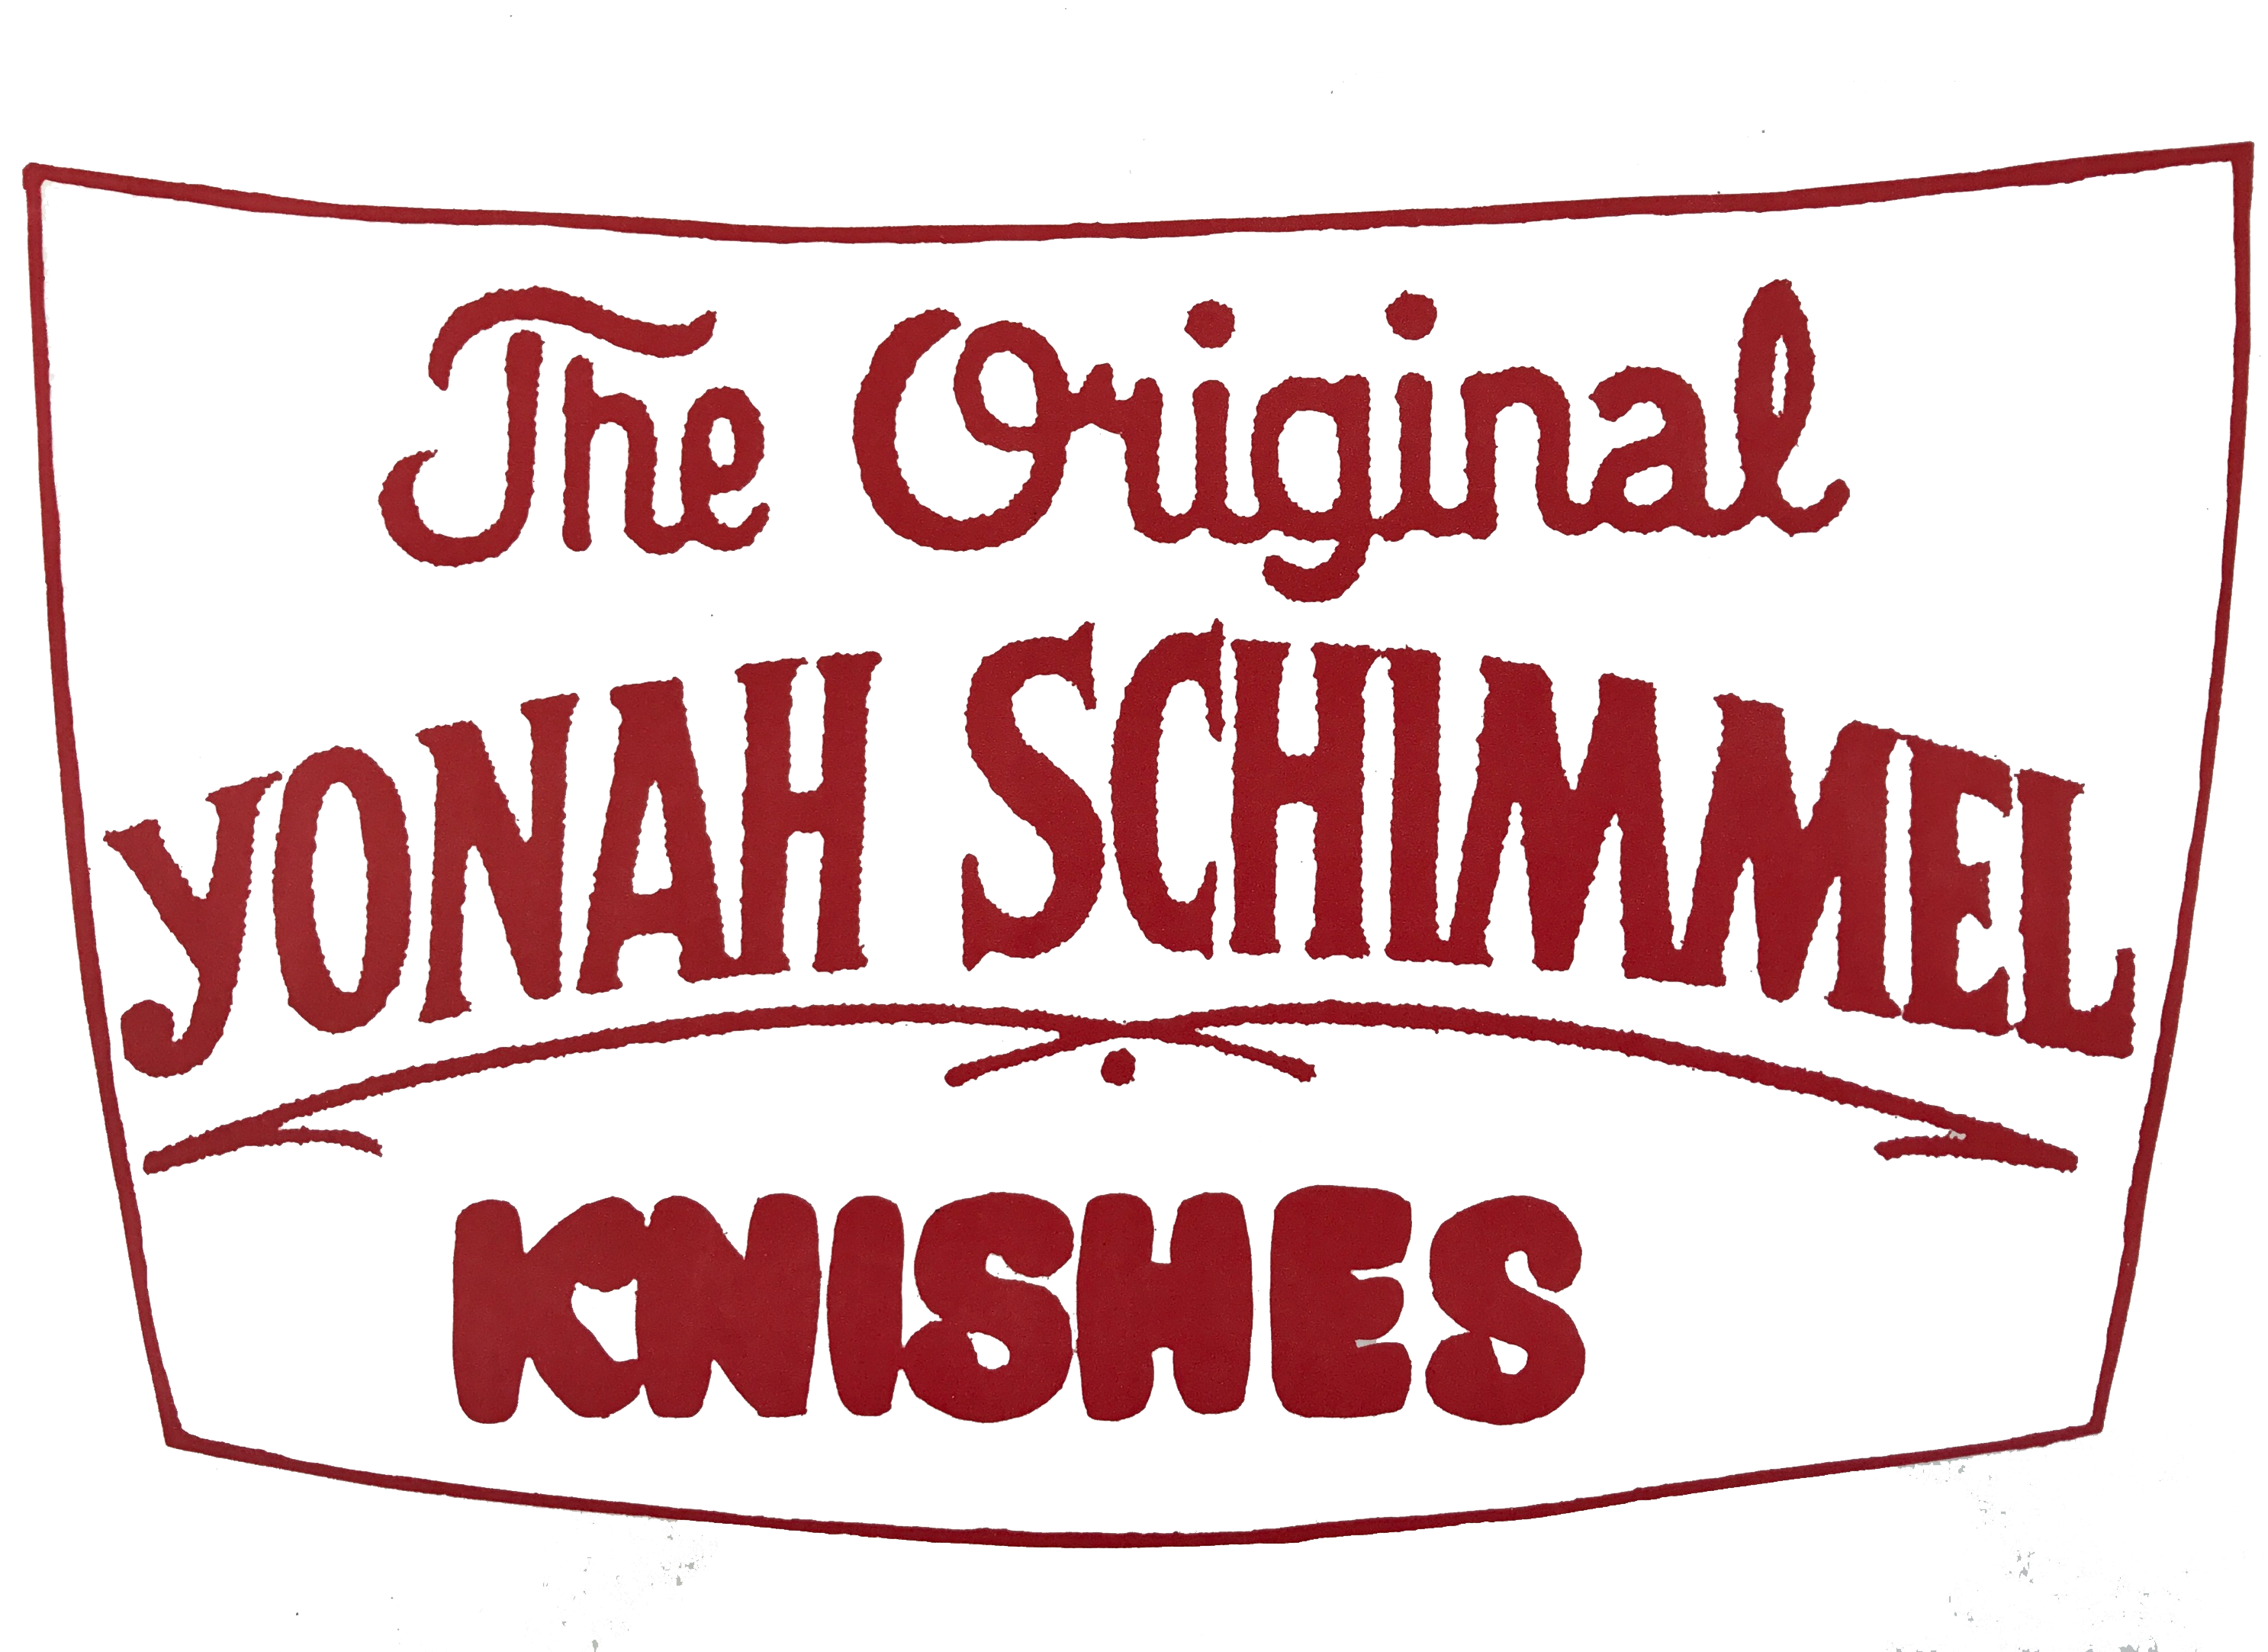 Yonah Schimmel Knishes | Kosher Gourmet Food | NYC| (212)477-2858